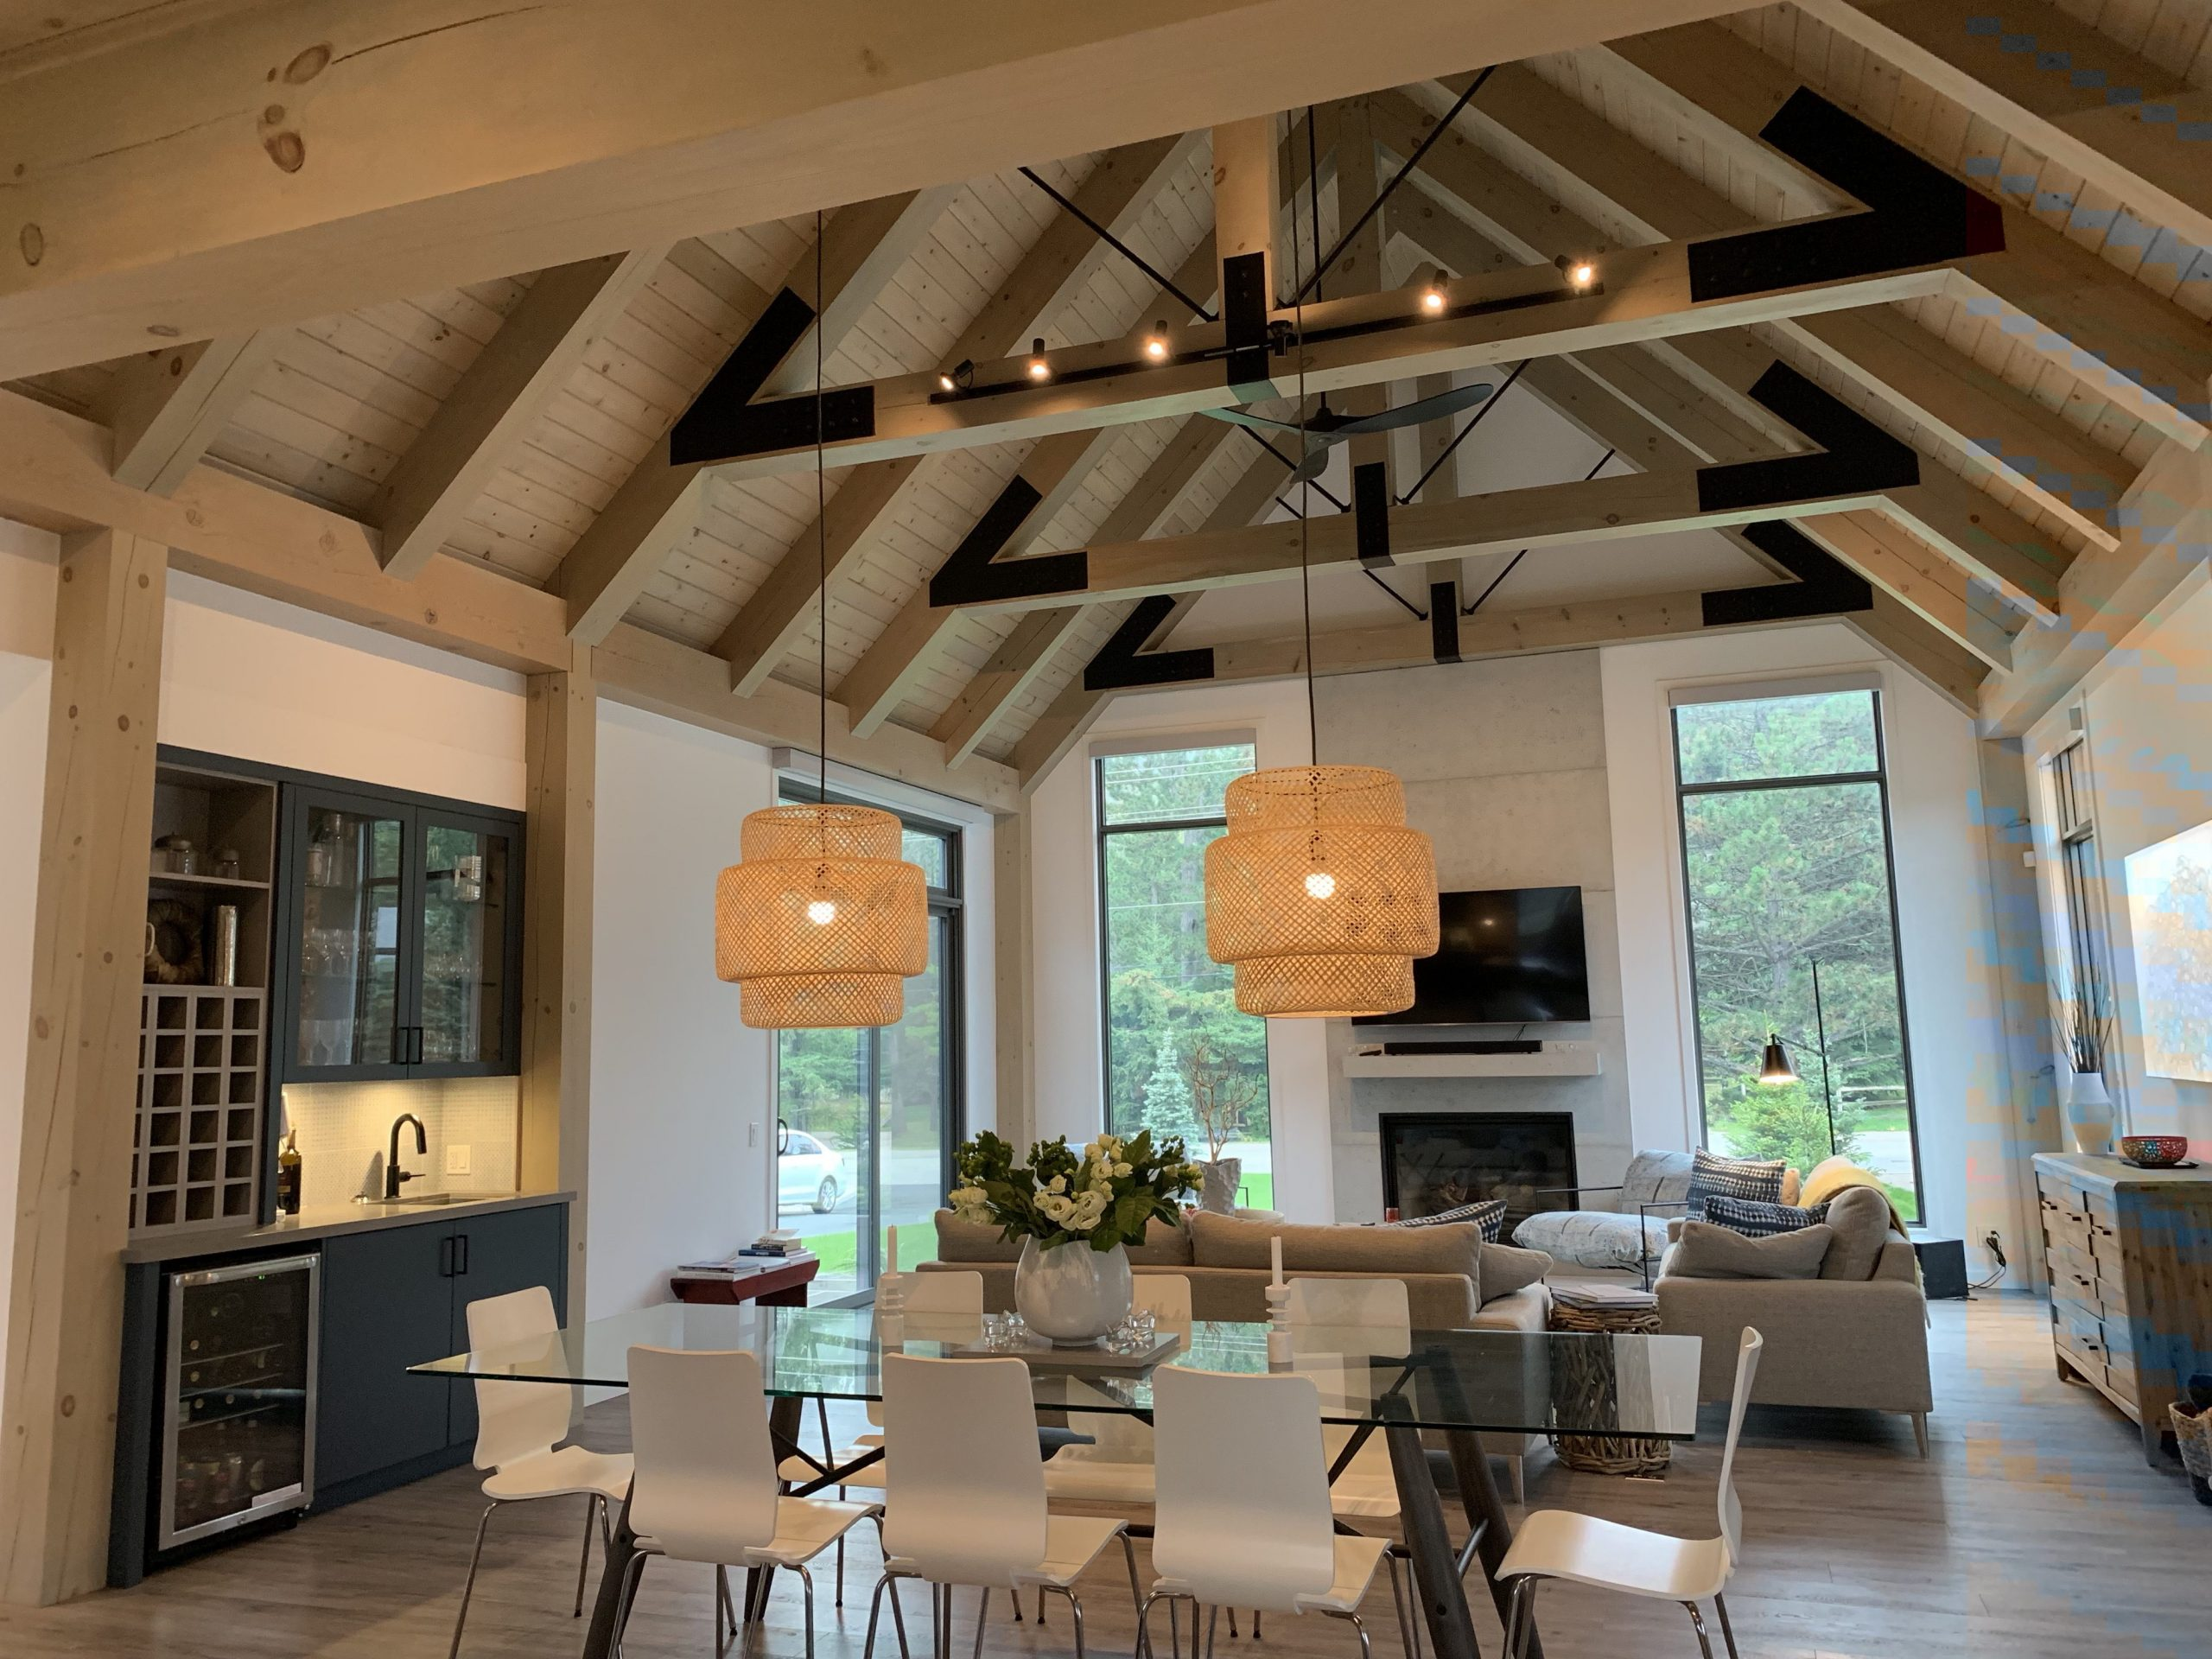 Normerica Timber Frame, Interior, Kitchen, Dining Room, Open Concept, Modern, Contemporary, Bar